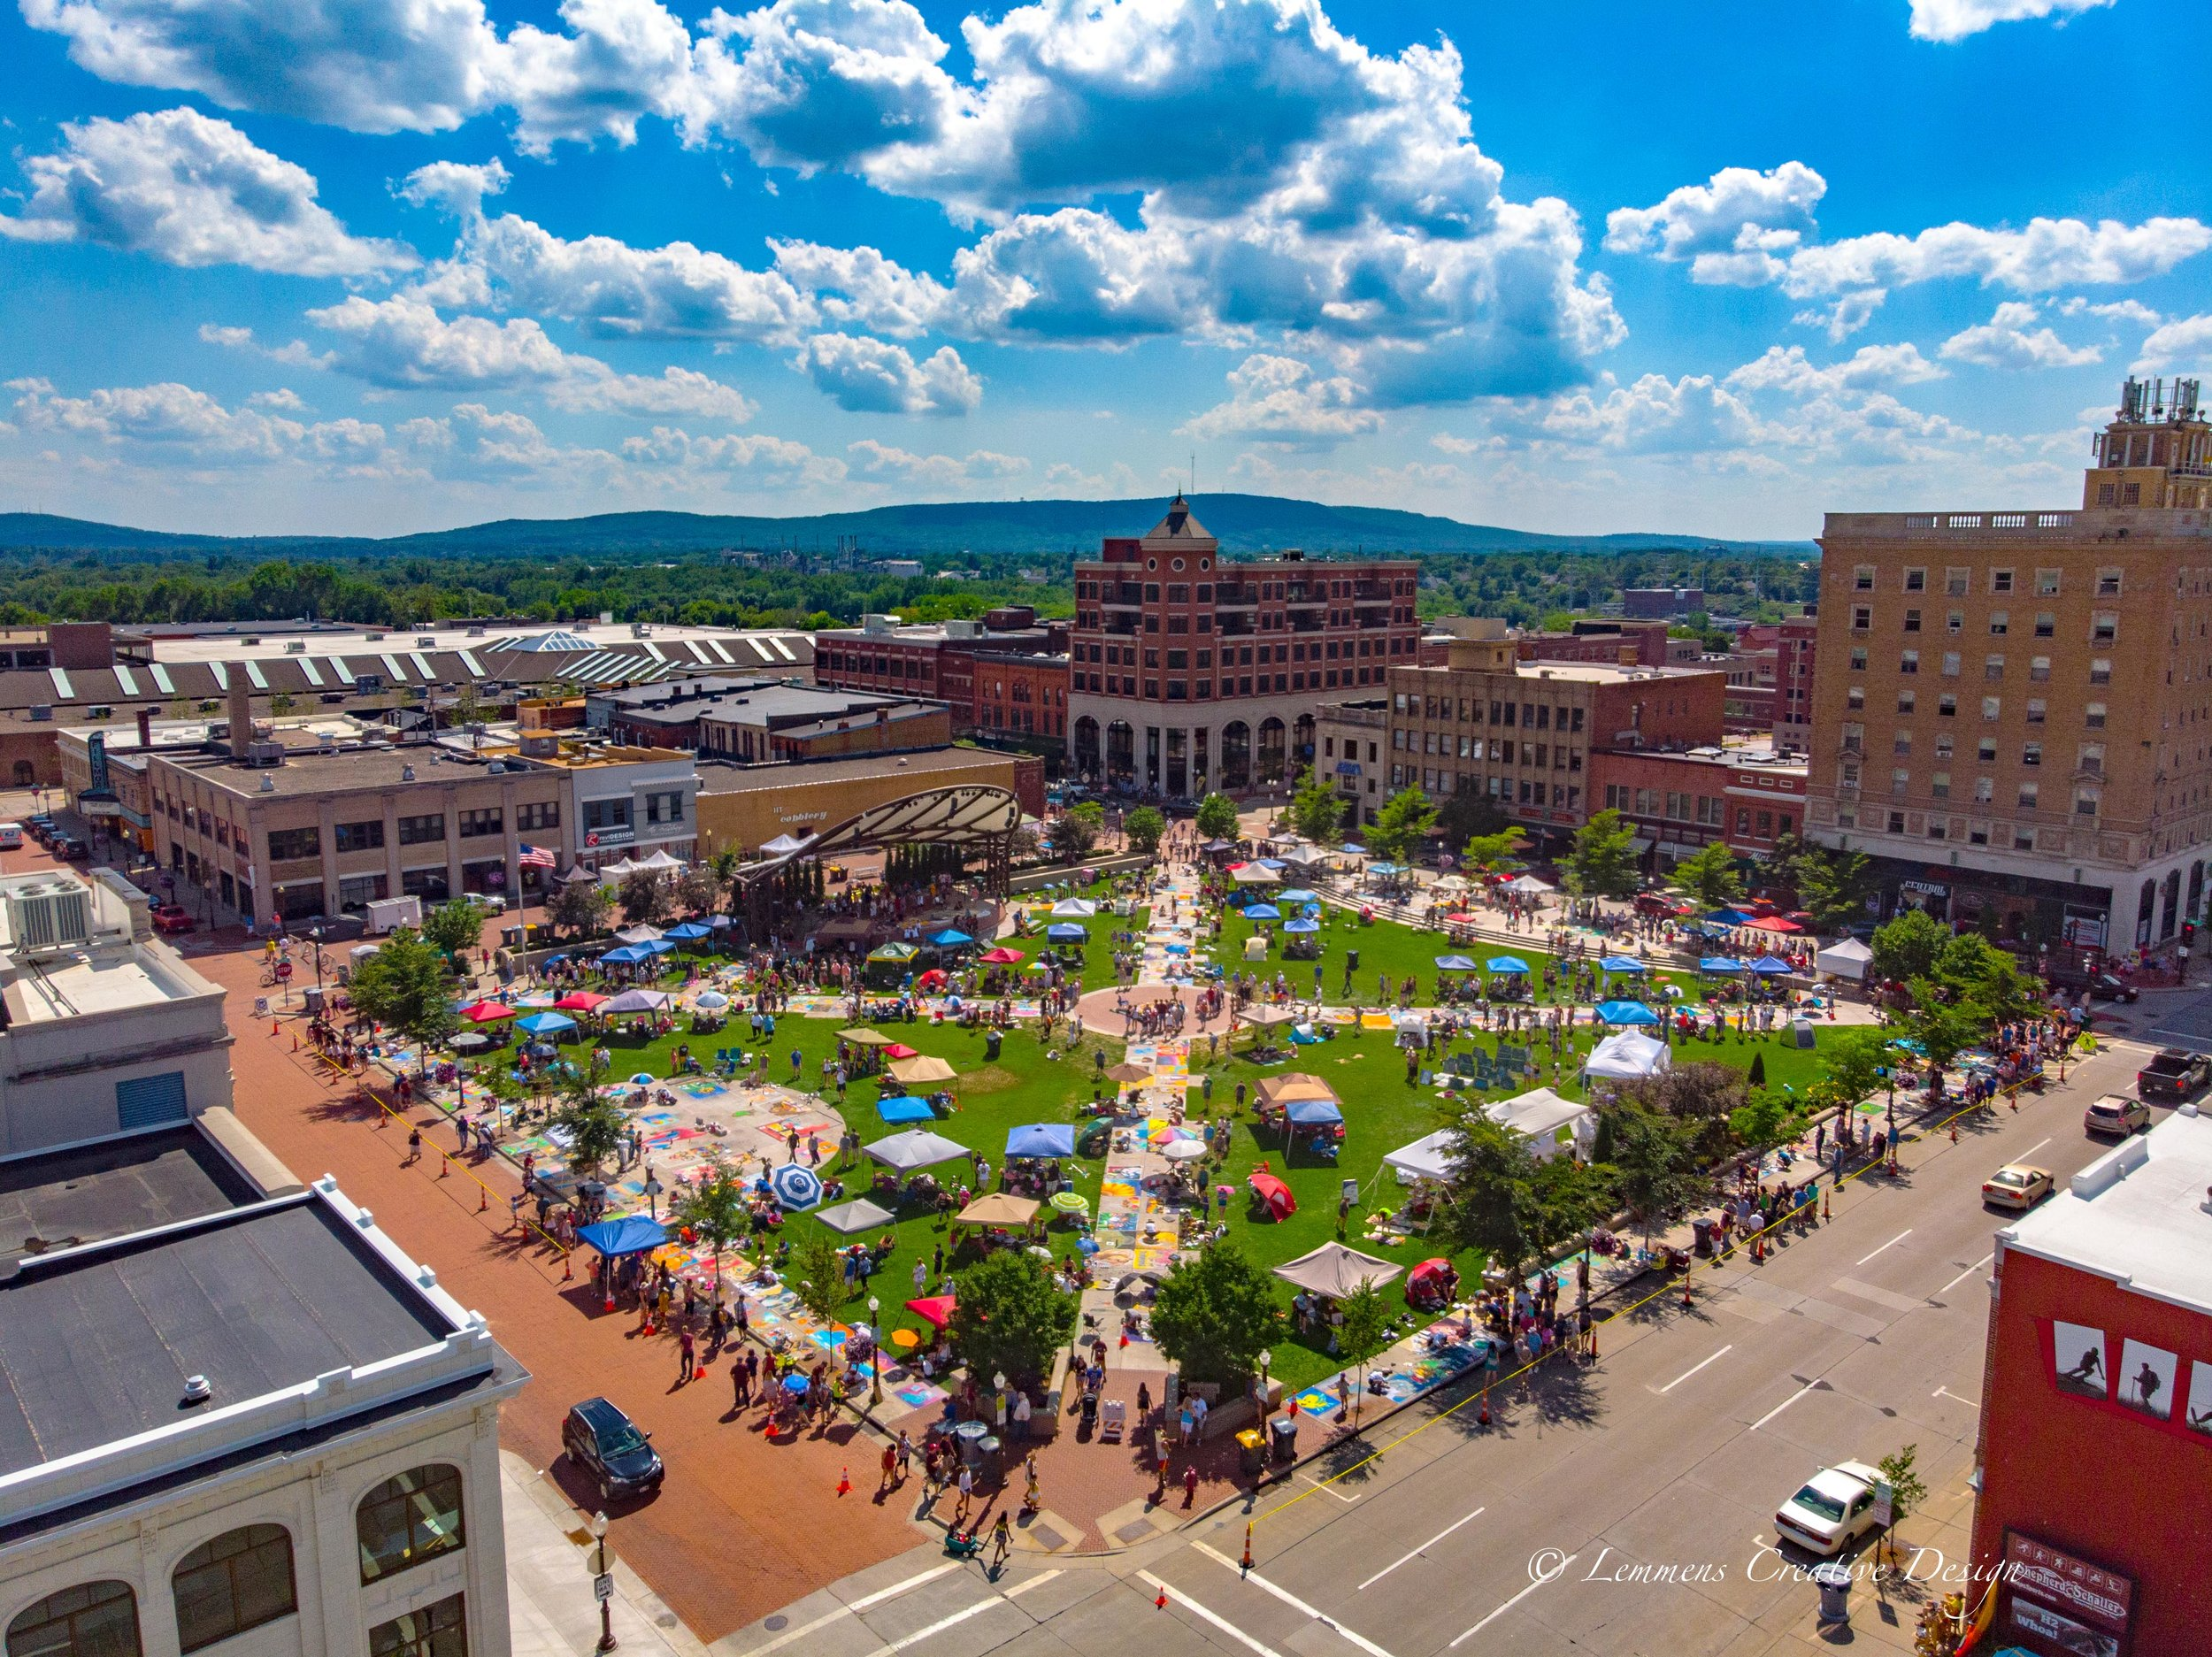 Aerial view of Wausau's 400 block covered in tents and people for a festival.